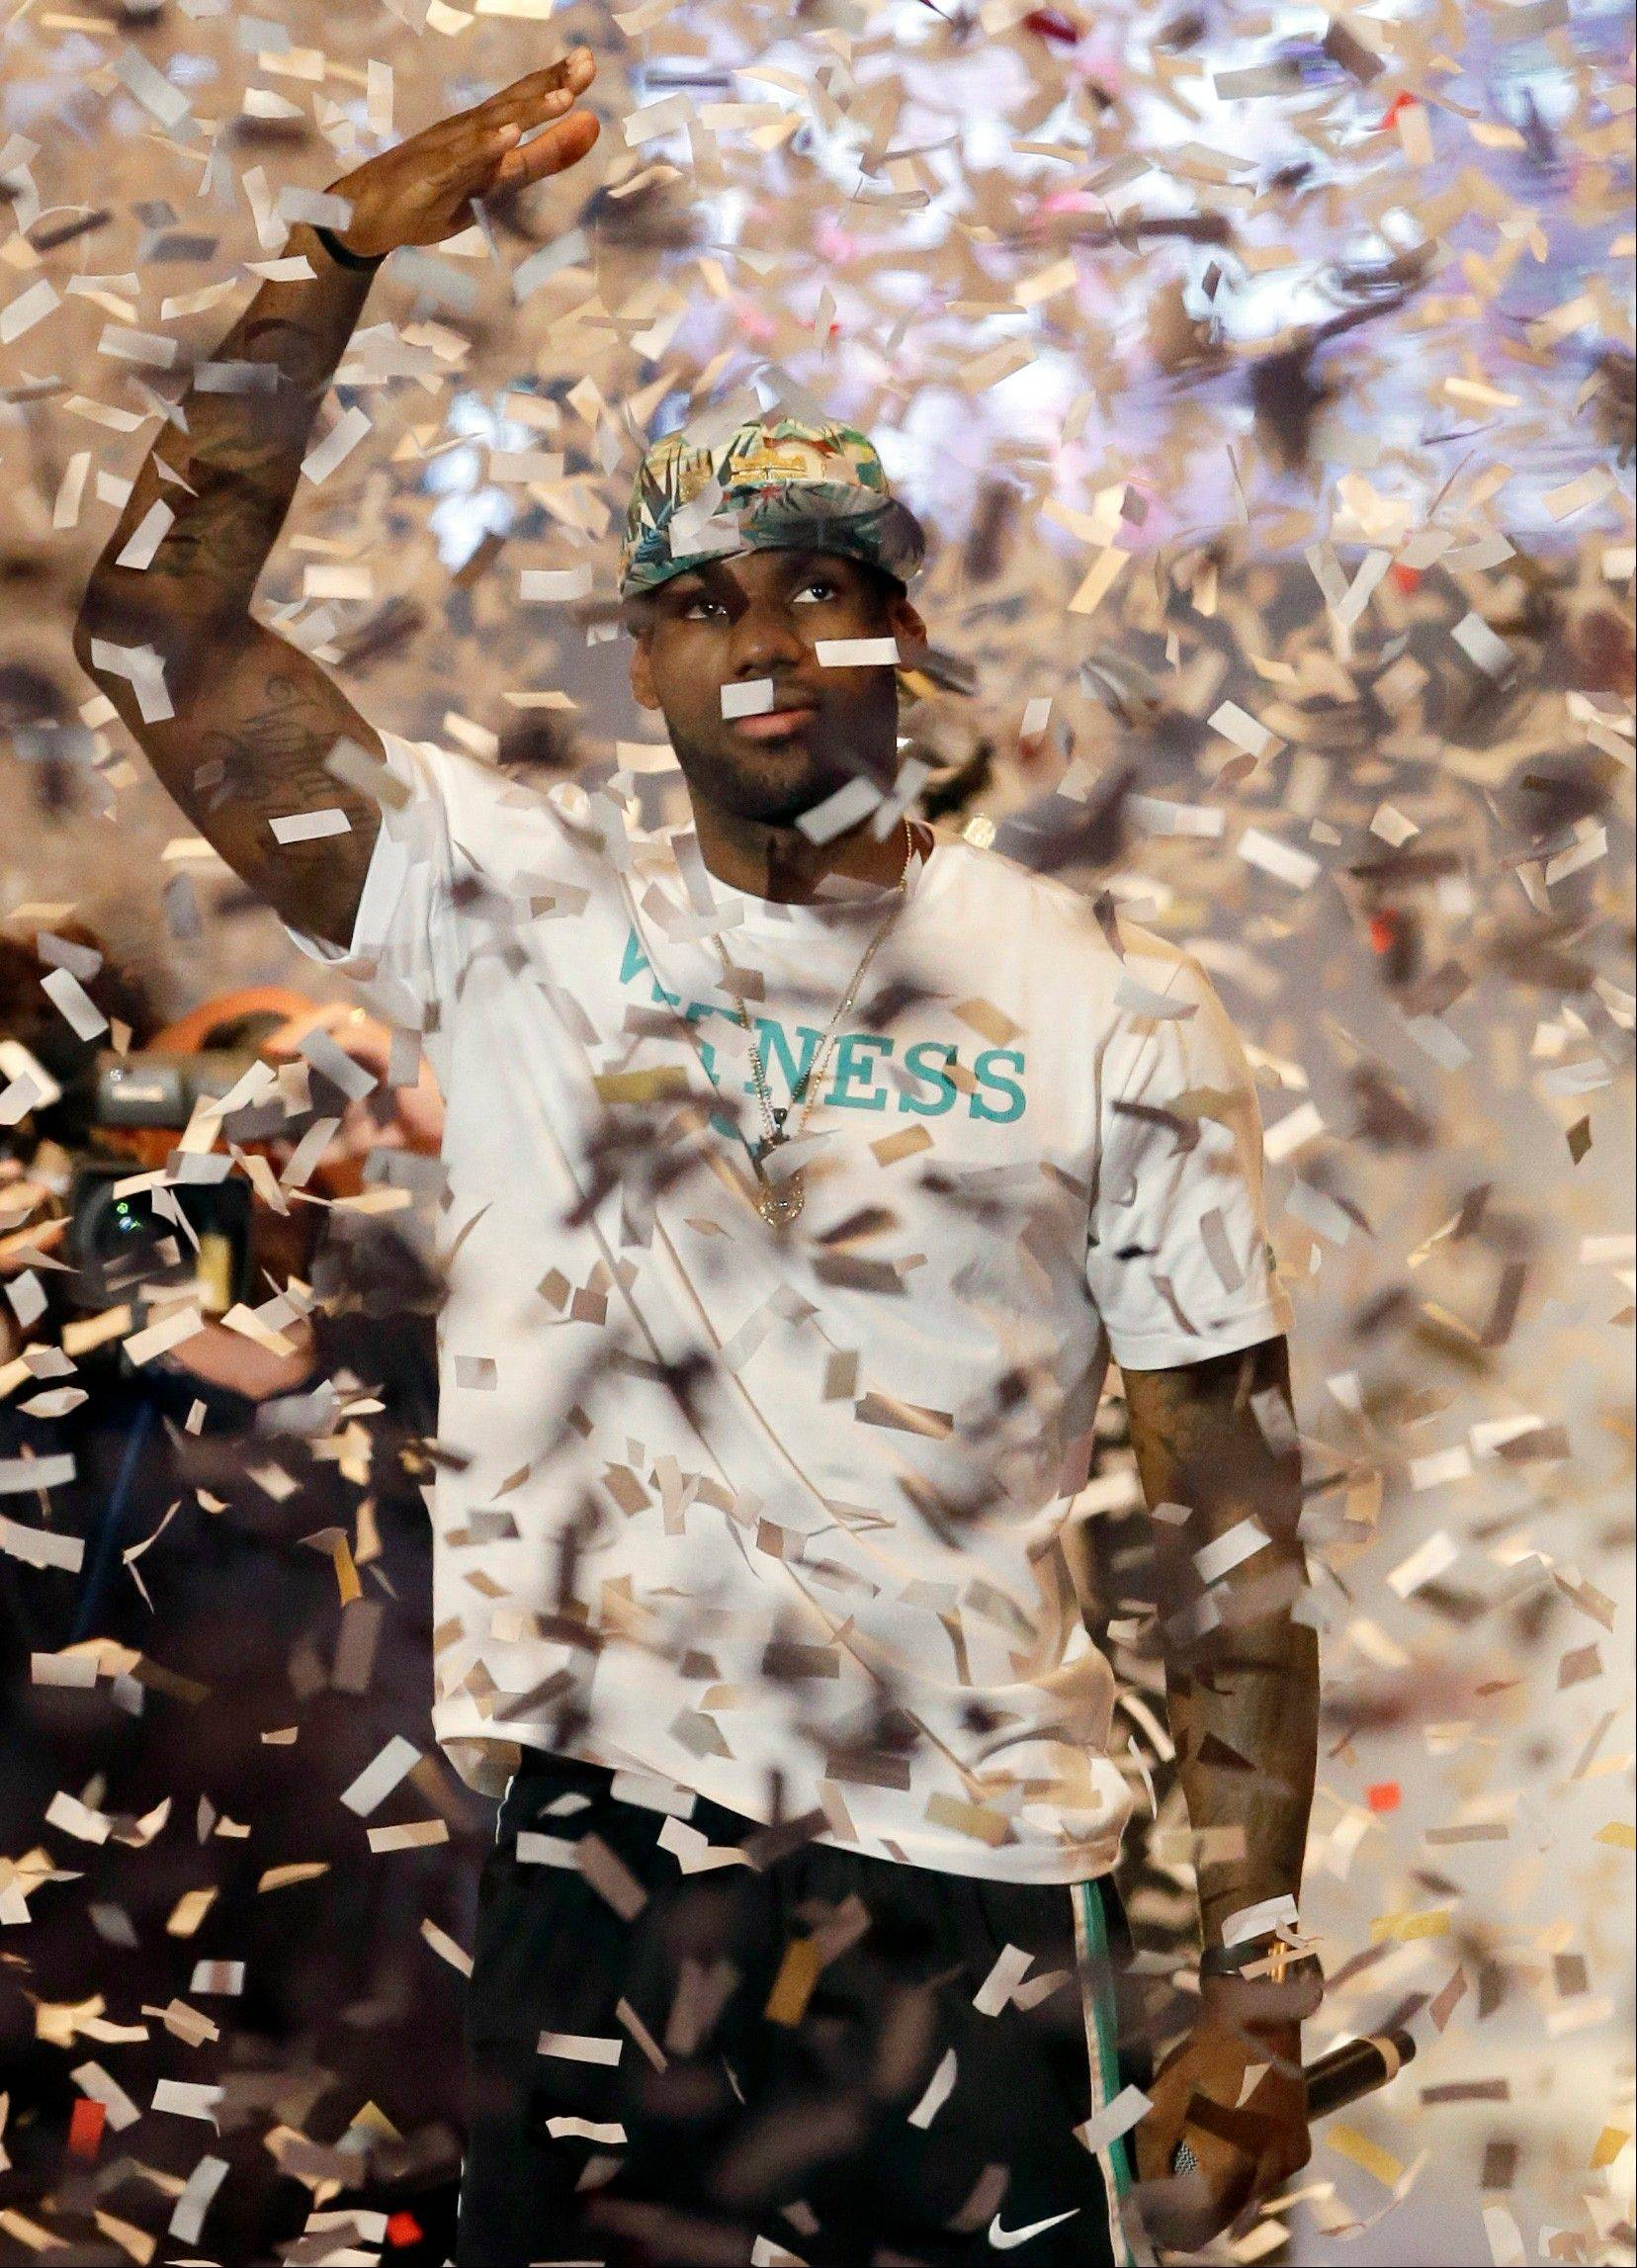 Miami Heat forward LeBron James, here celebrating his team's second straight NBA title, will begin his quest for a three-peat when the season opens Tuesday against the Bulls and Derrick Rose. The Heat defeated the San Antonio Spurs 95-88 in Game 7 to win last season's title.